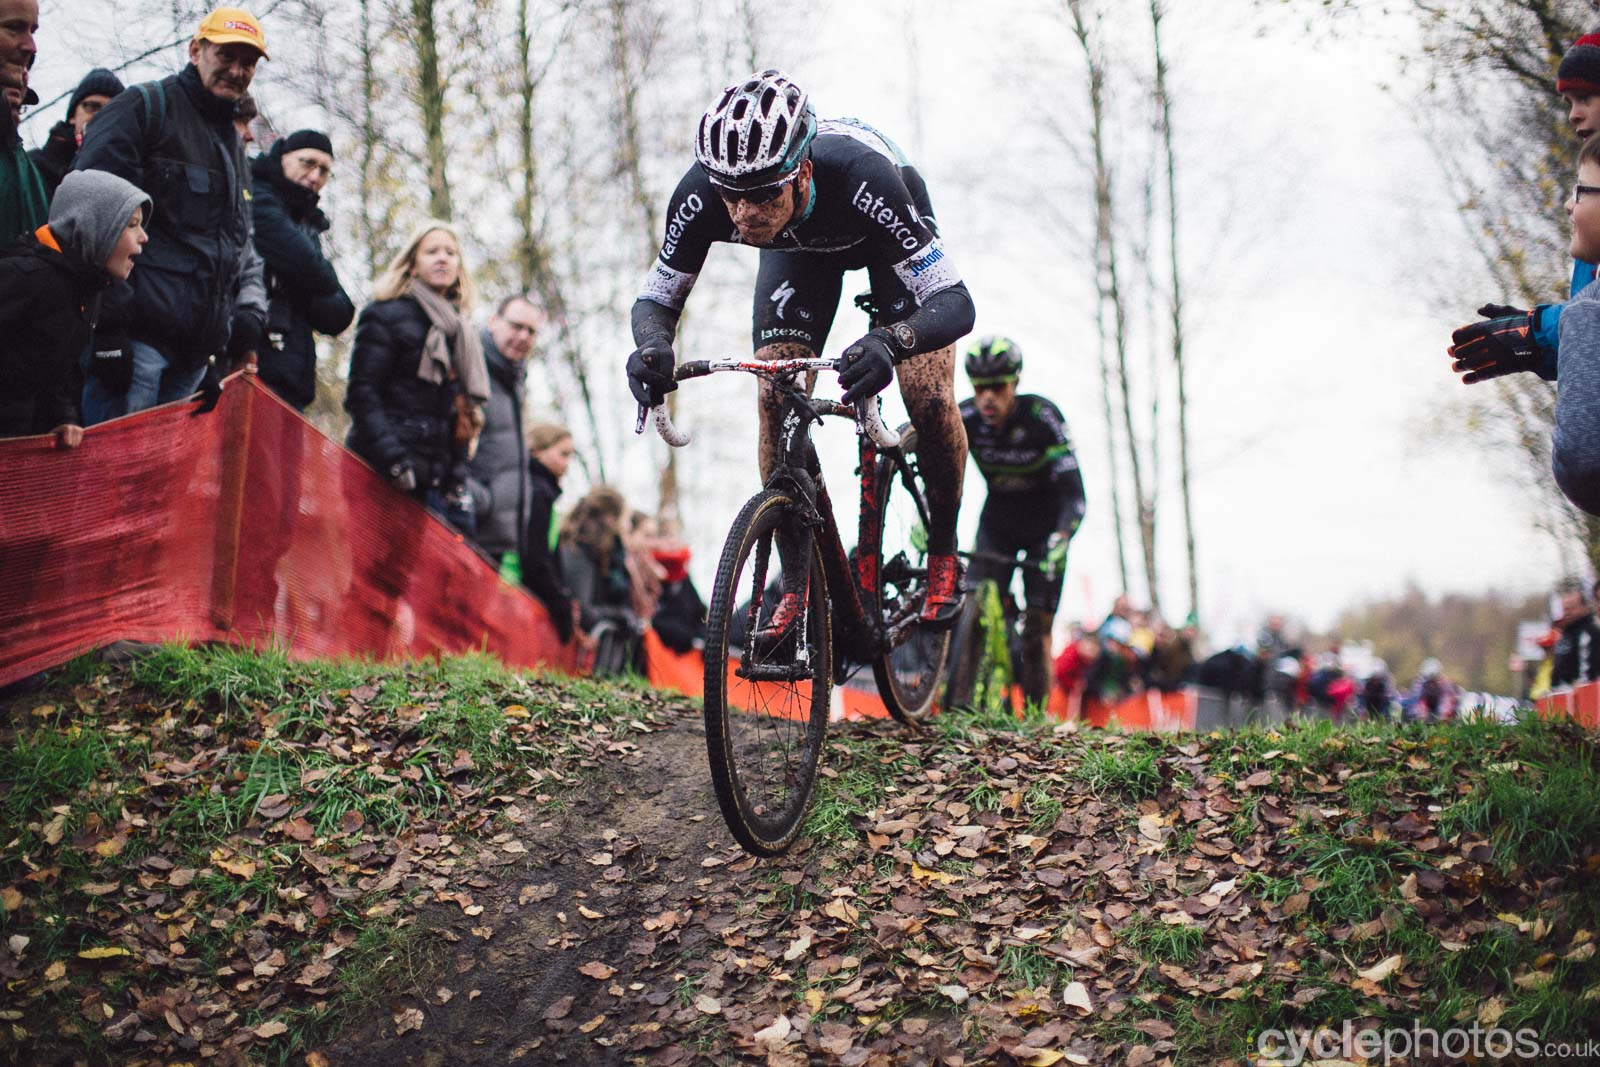 2015-cyclephotos-cyclocross-essen-152609-zdenek-stybar